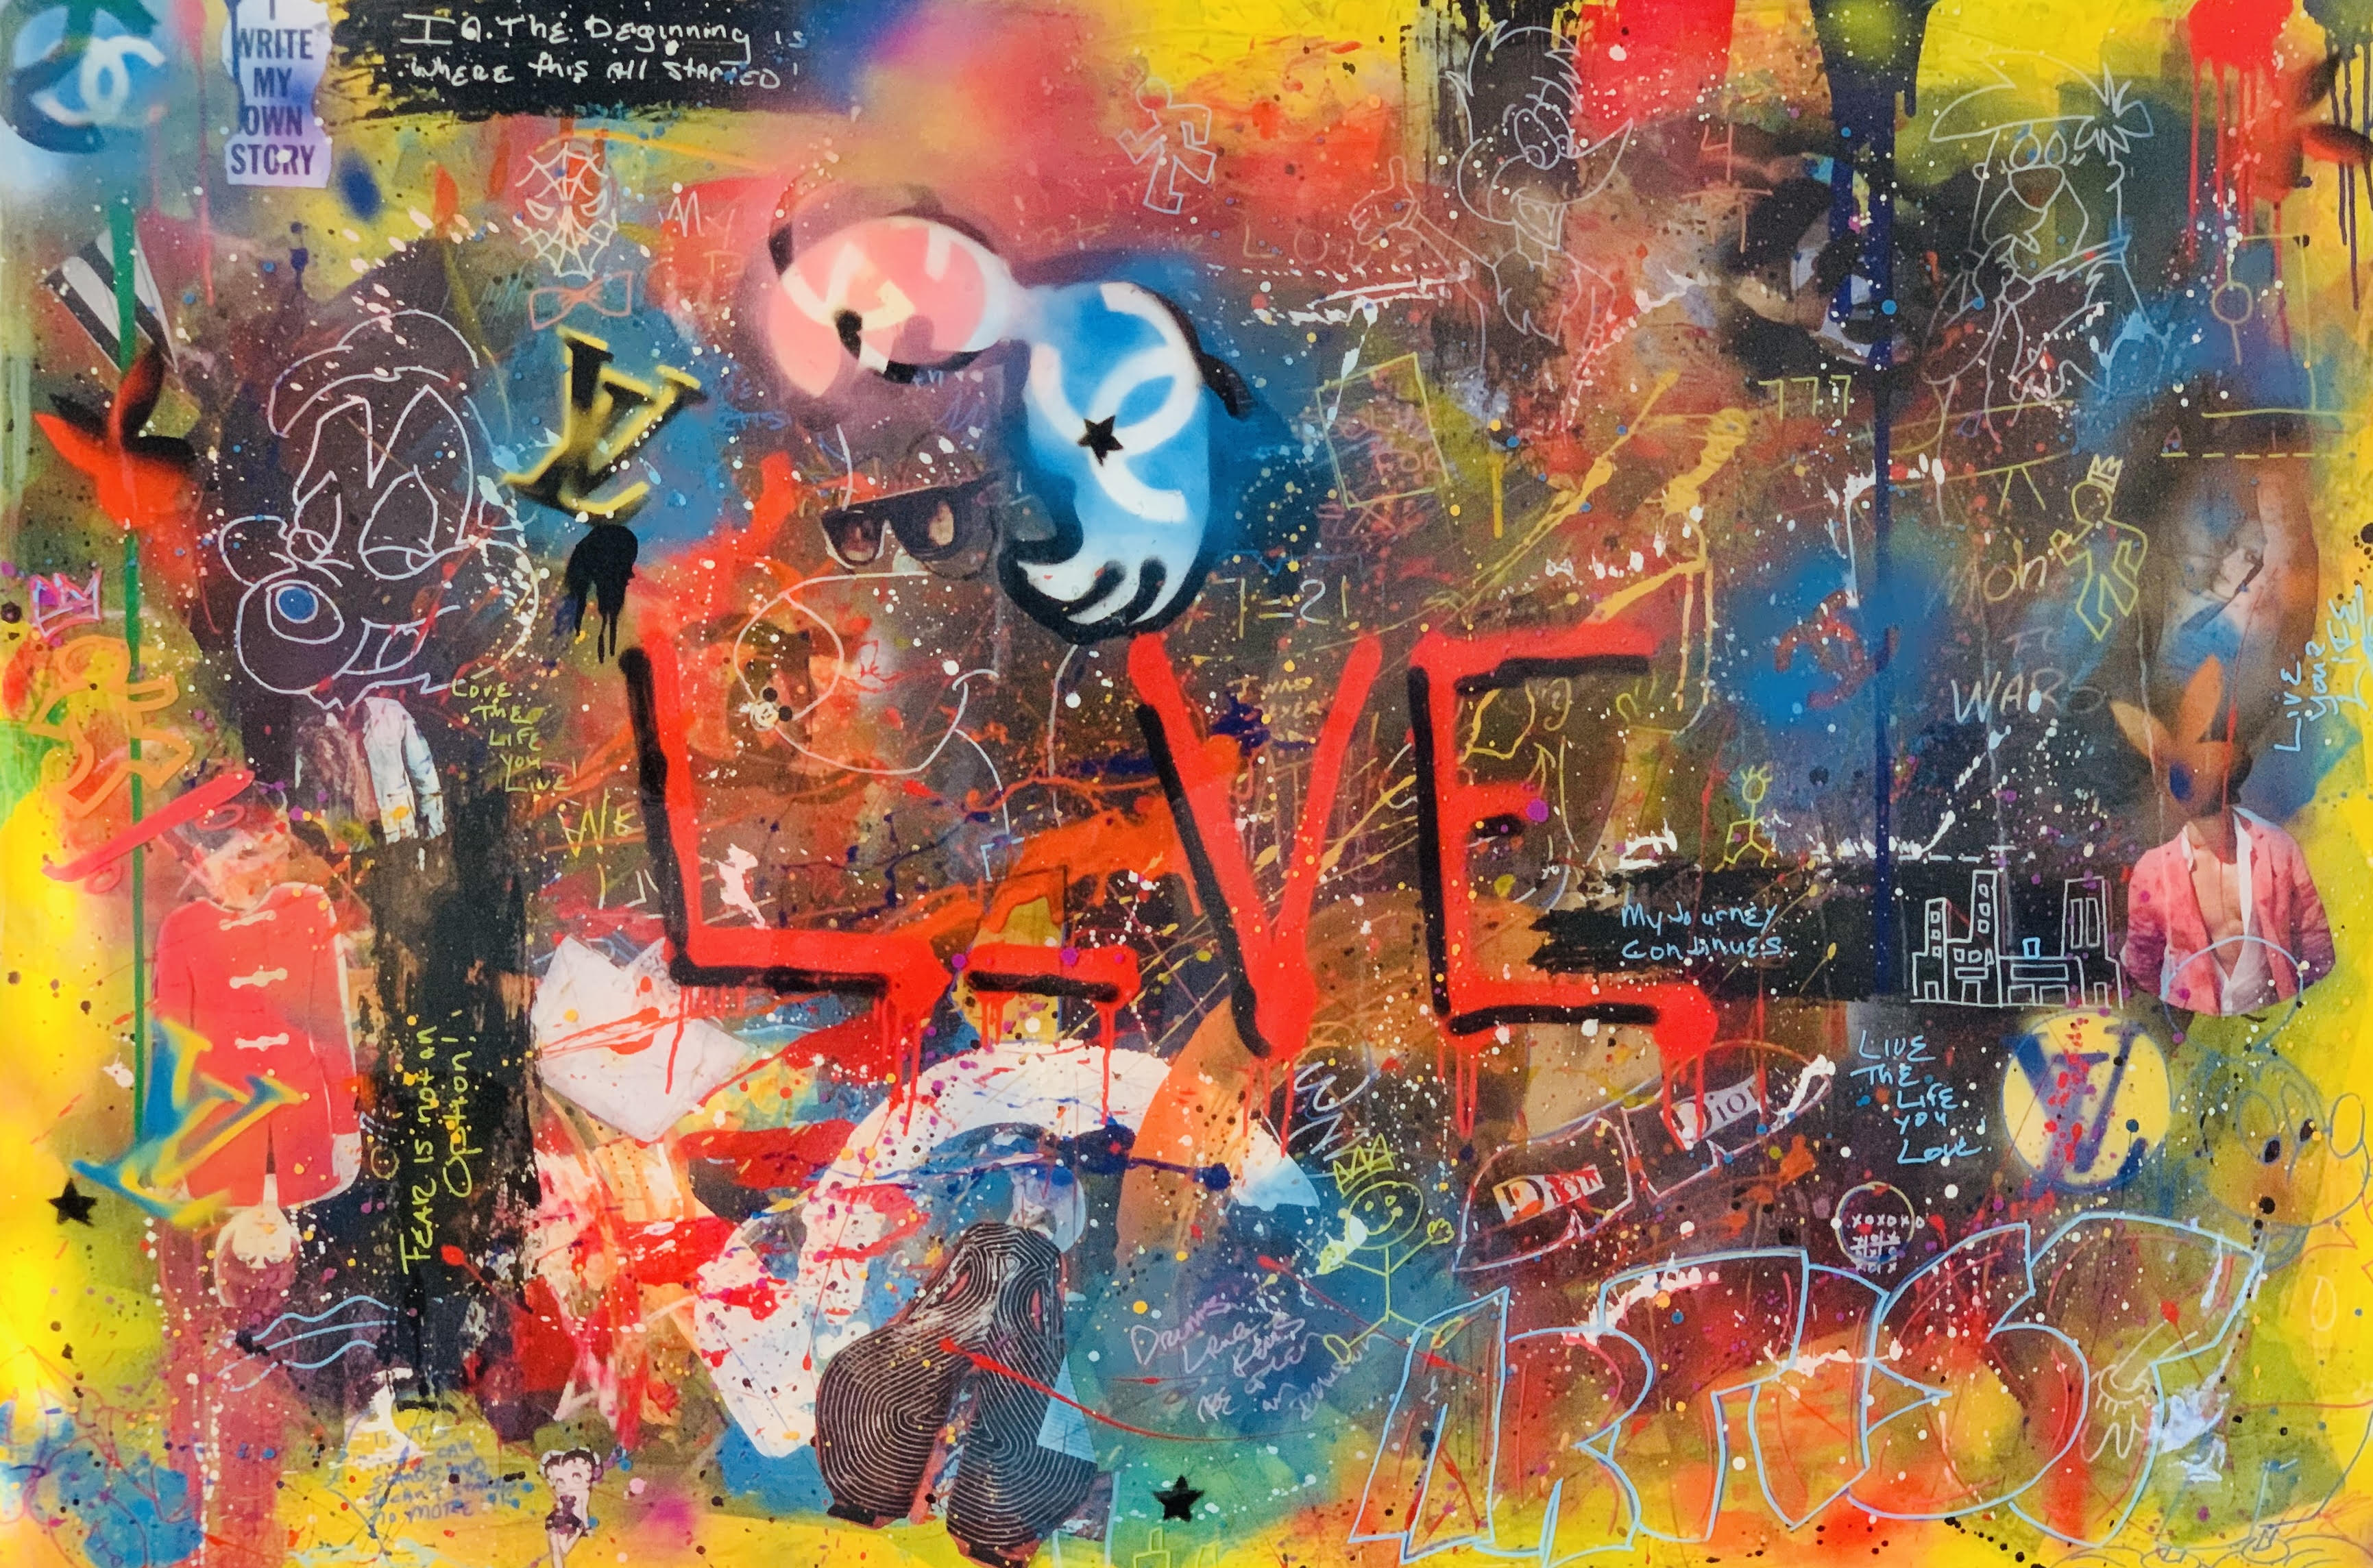 BEAUTIFUL CHAOS Live Love artwork by Anderson Smith - art listed for sale on Artplode